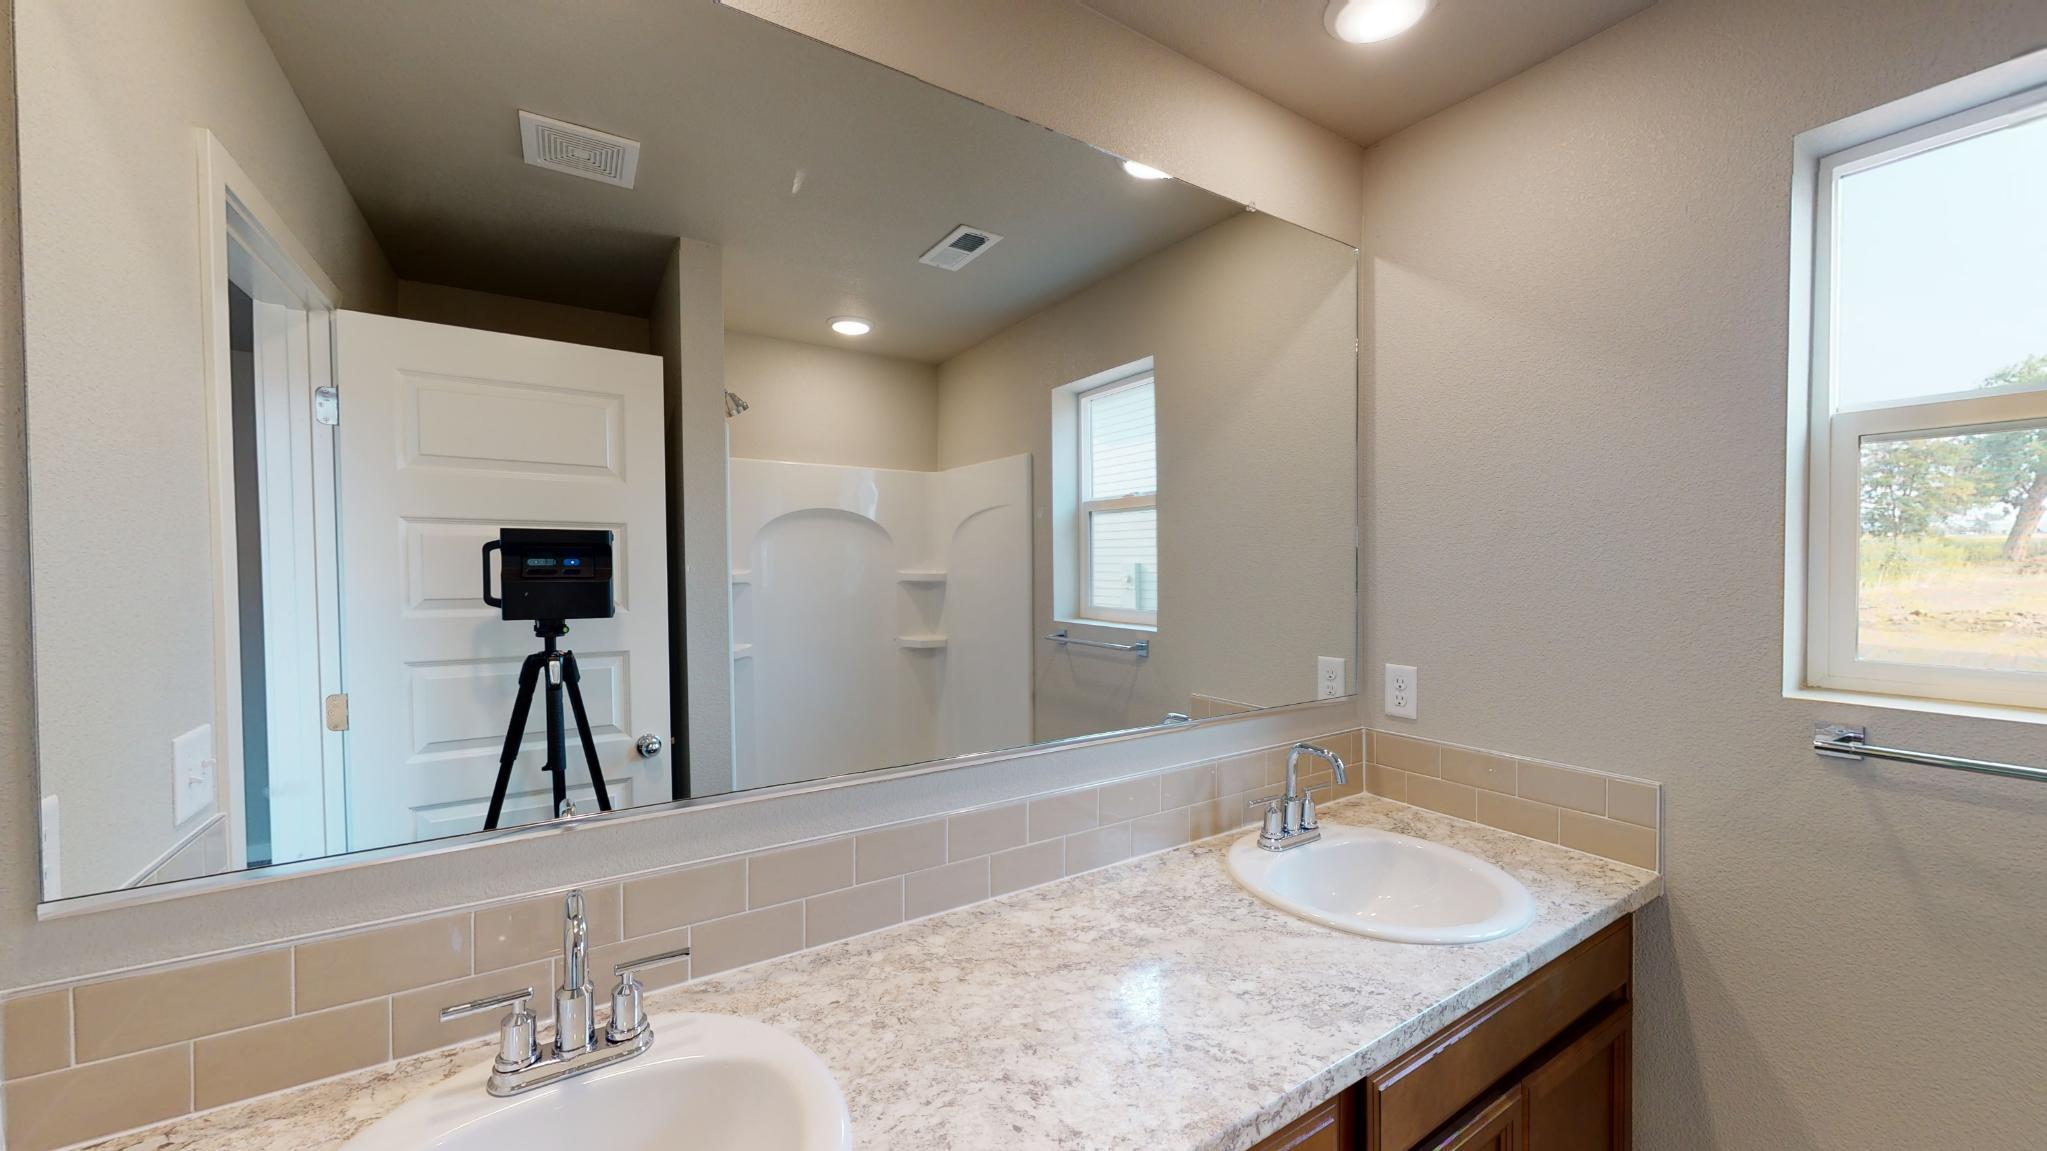 Bathroom featured in the Bristol By Baessler Homes in Greeley, CO